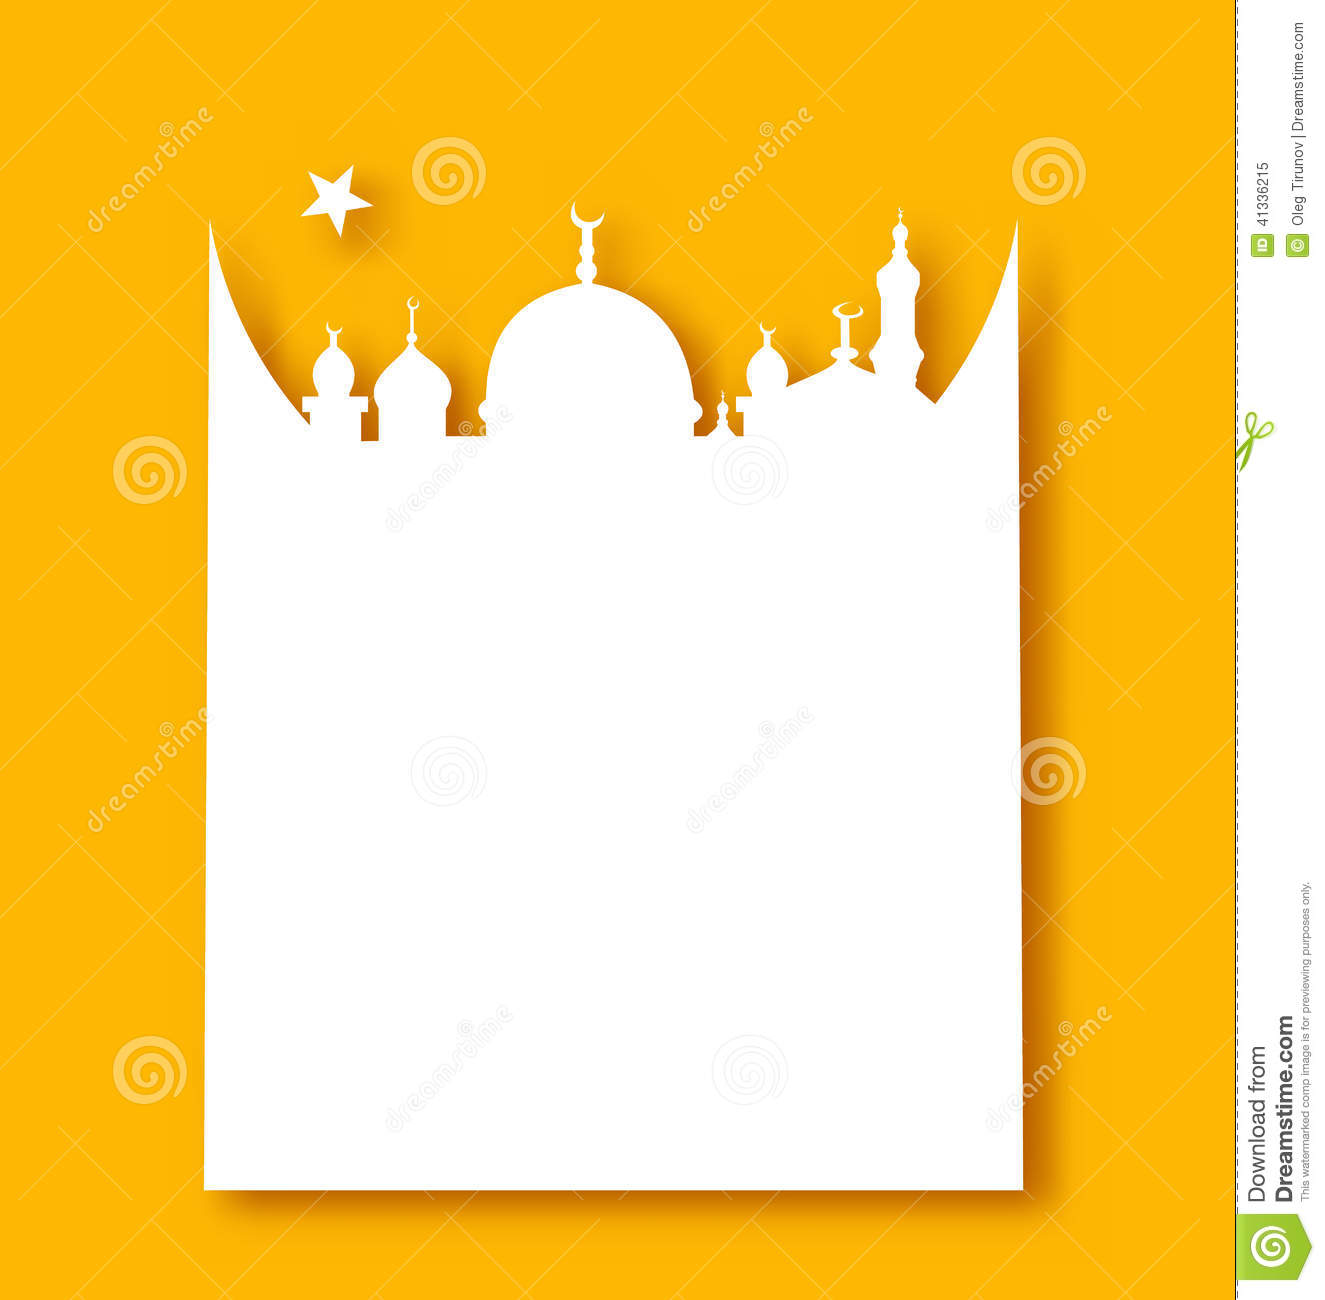 Greeting card template for ramadan kareem stock vector greeting card template for ramadan kareem kristyandbryce Image collections